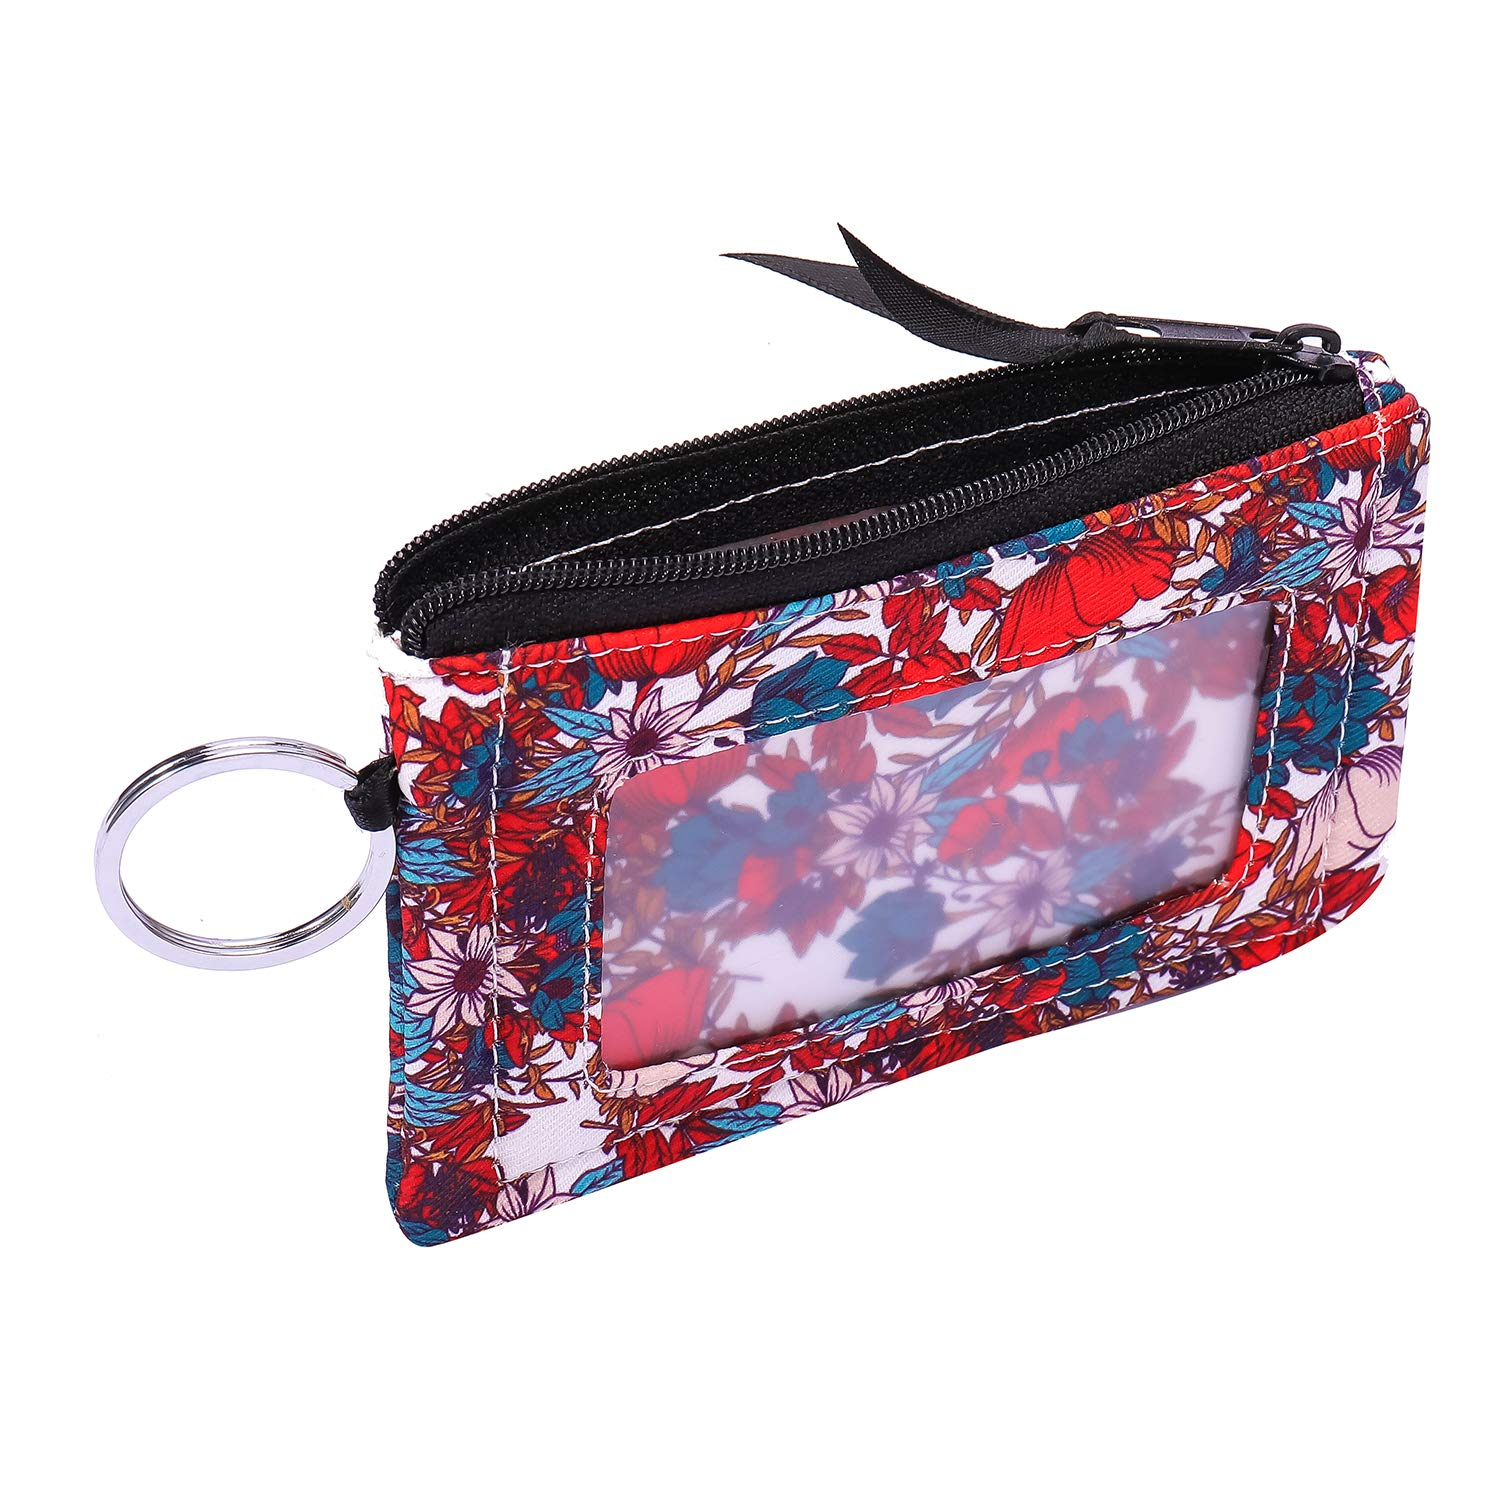 Signature Cotton Black Iconic Zip ID Case Wallet//Coin Purse with Id Window